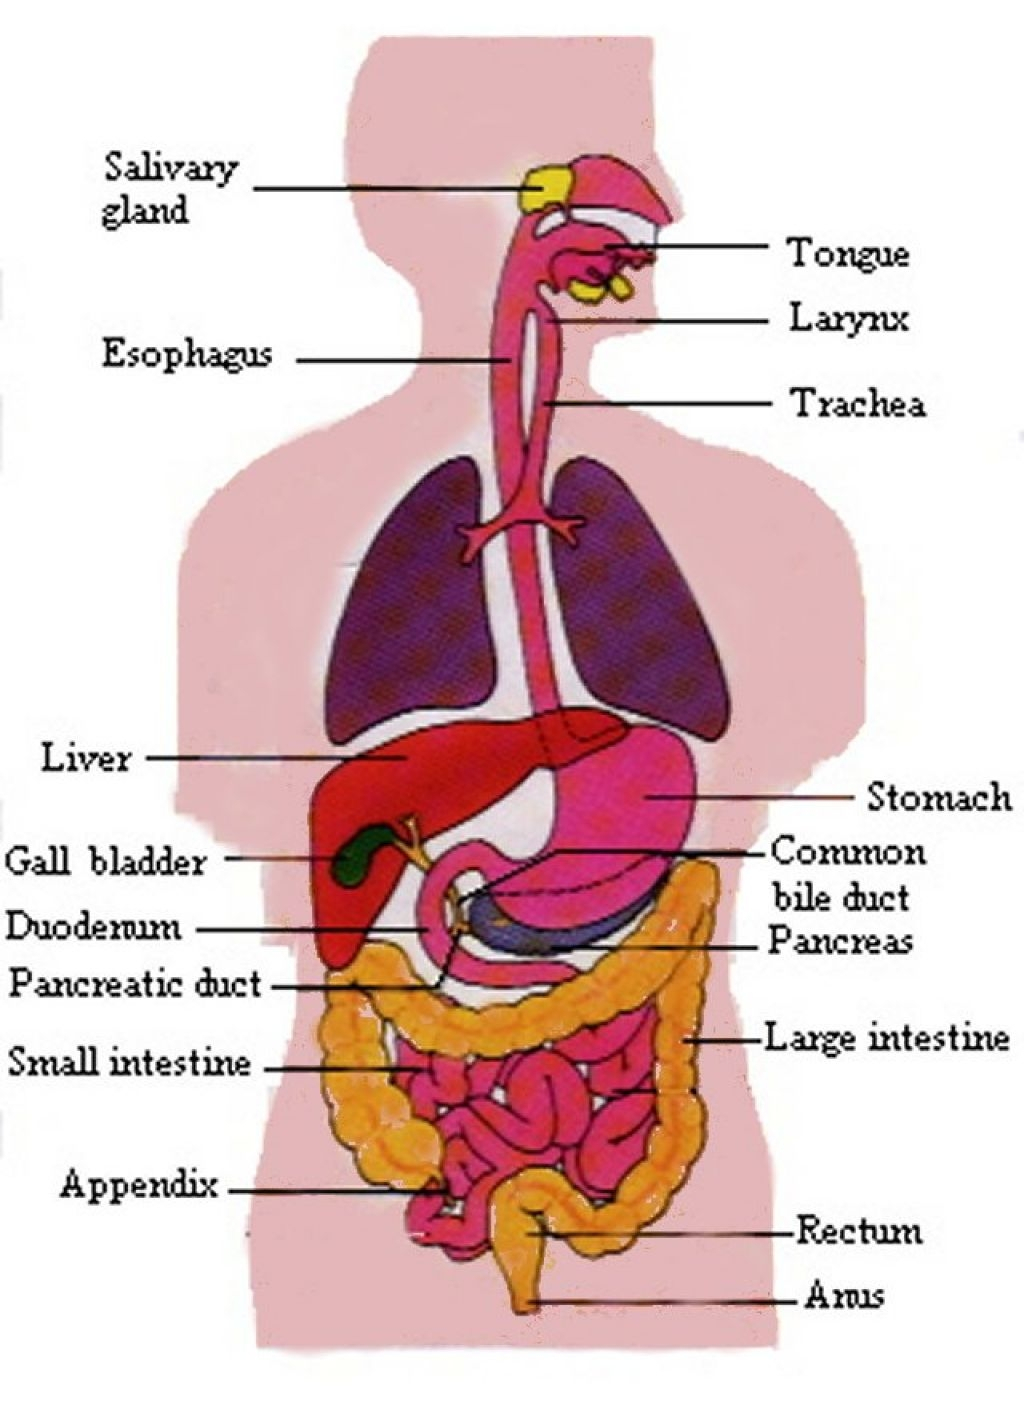 Digestive System Drawing At Getdrawings Free For Personal Use